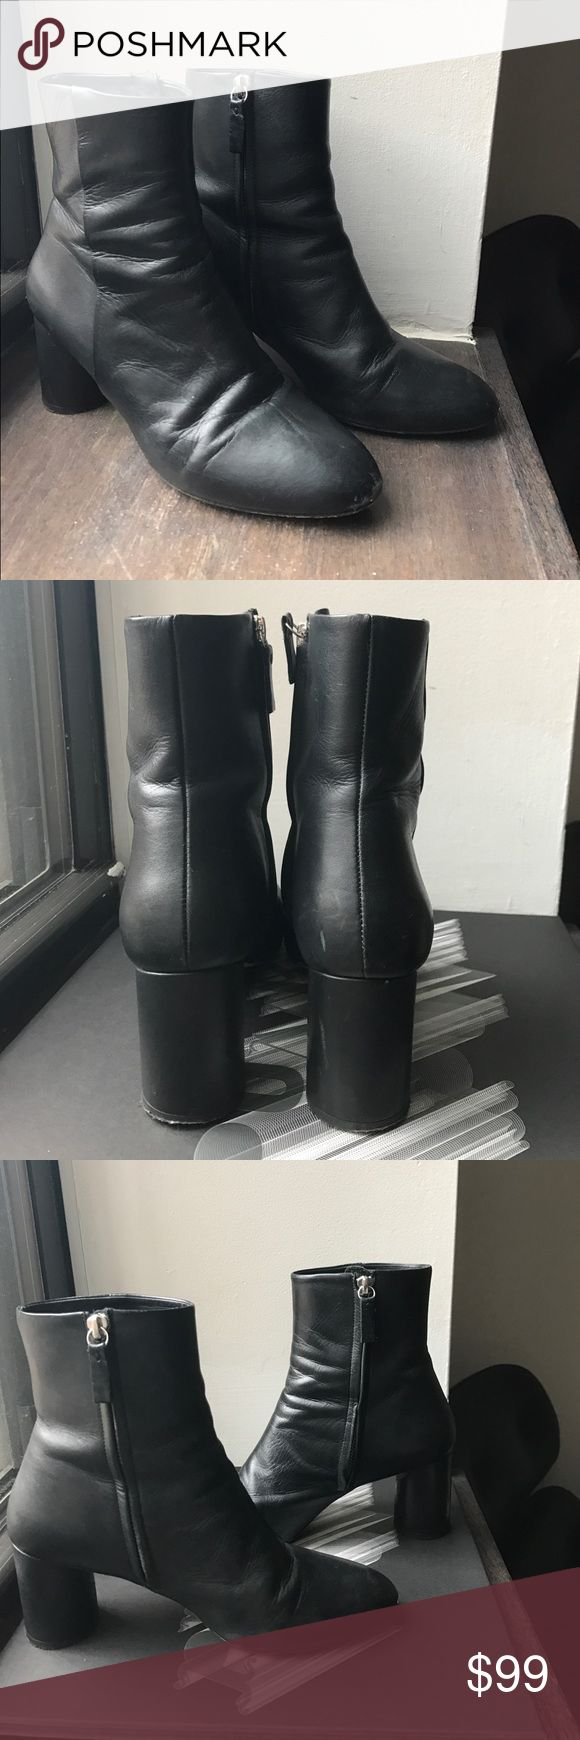 COS black leather Cylinder heel ankle boot Genuine leather black ankle boot, with inside zip closure. Size 39 fits like a size 8.5. Light wear at the toe. Brand- COS COS Shoes Ankle Boots & Booties